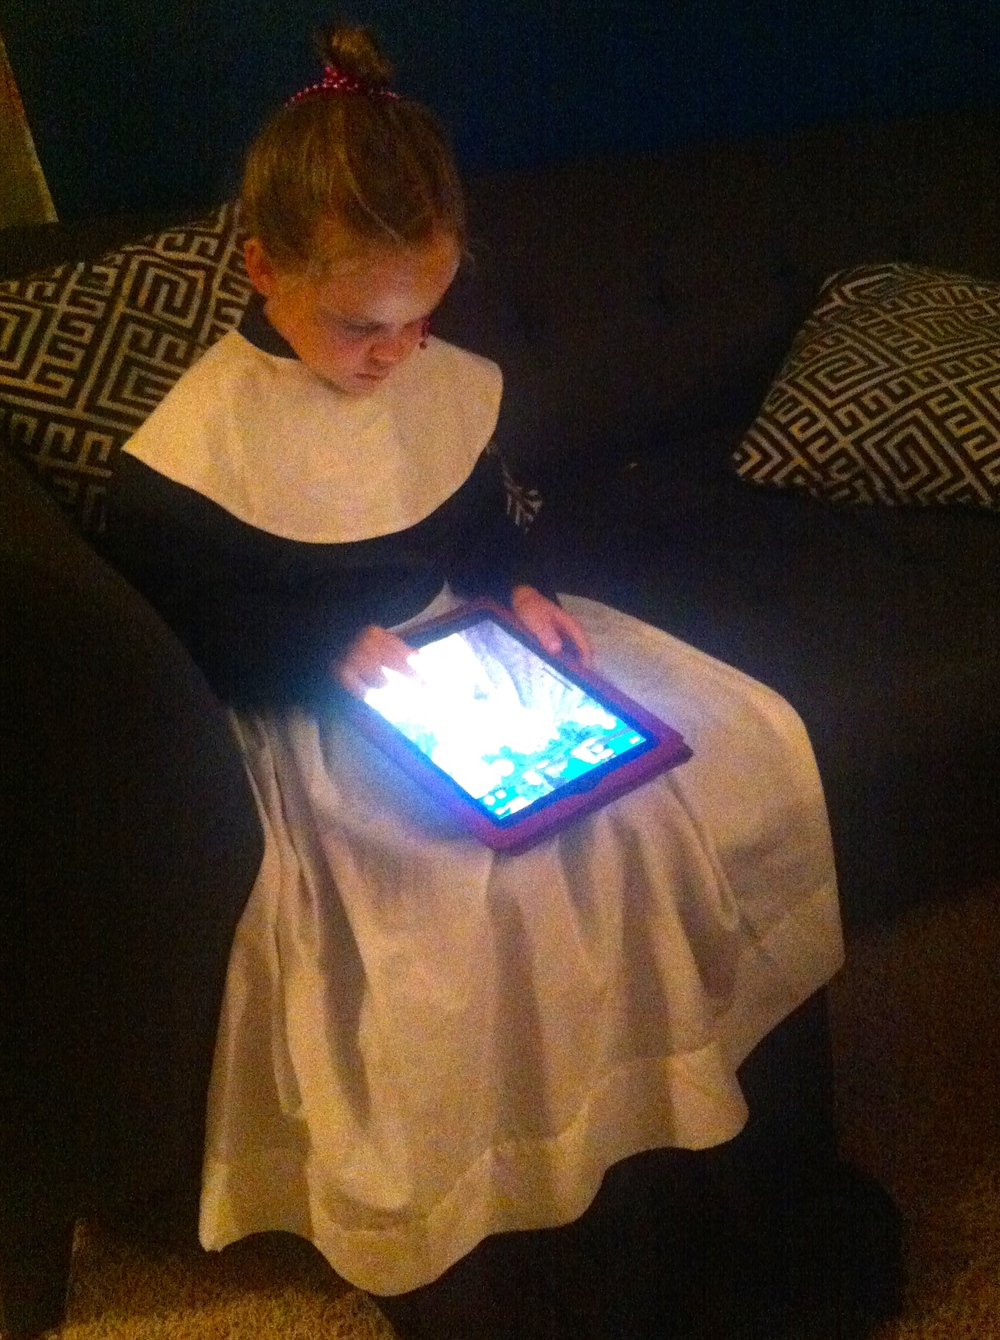 a little pilgrim playing iPad games